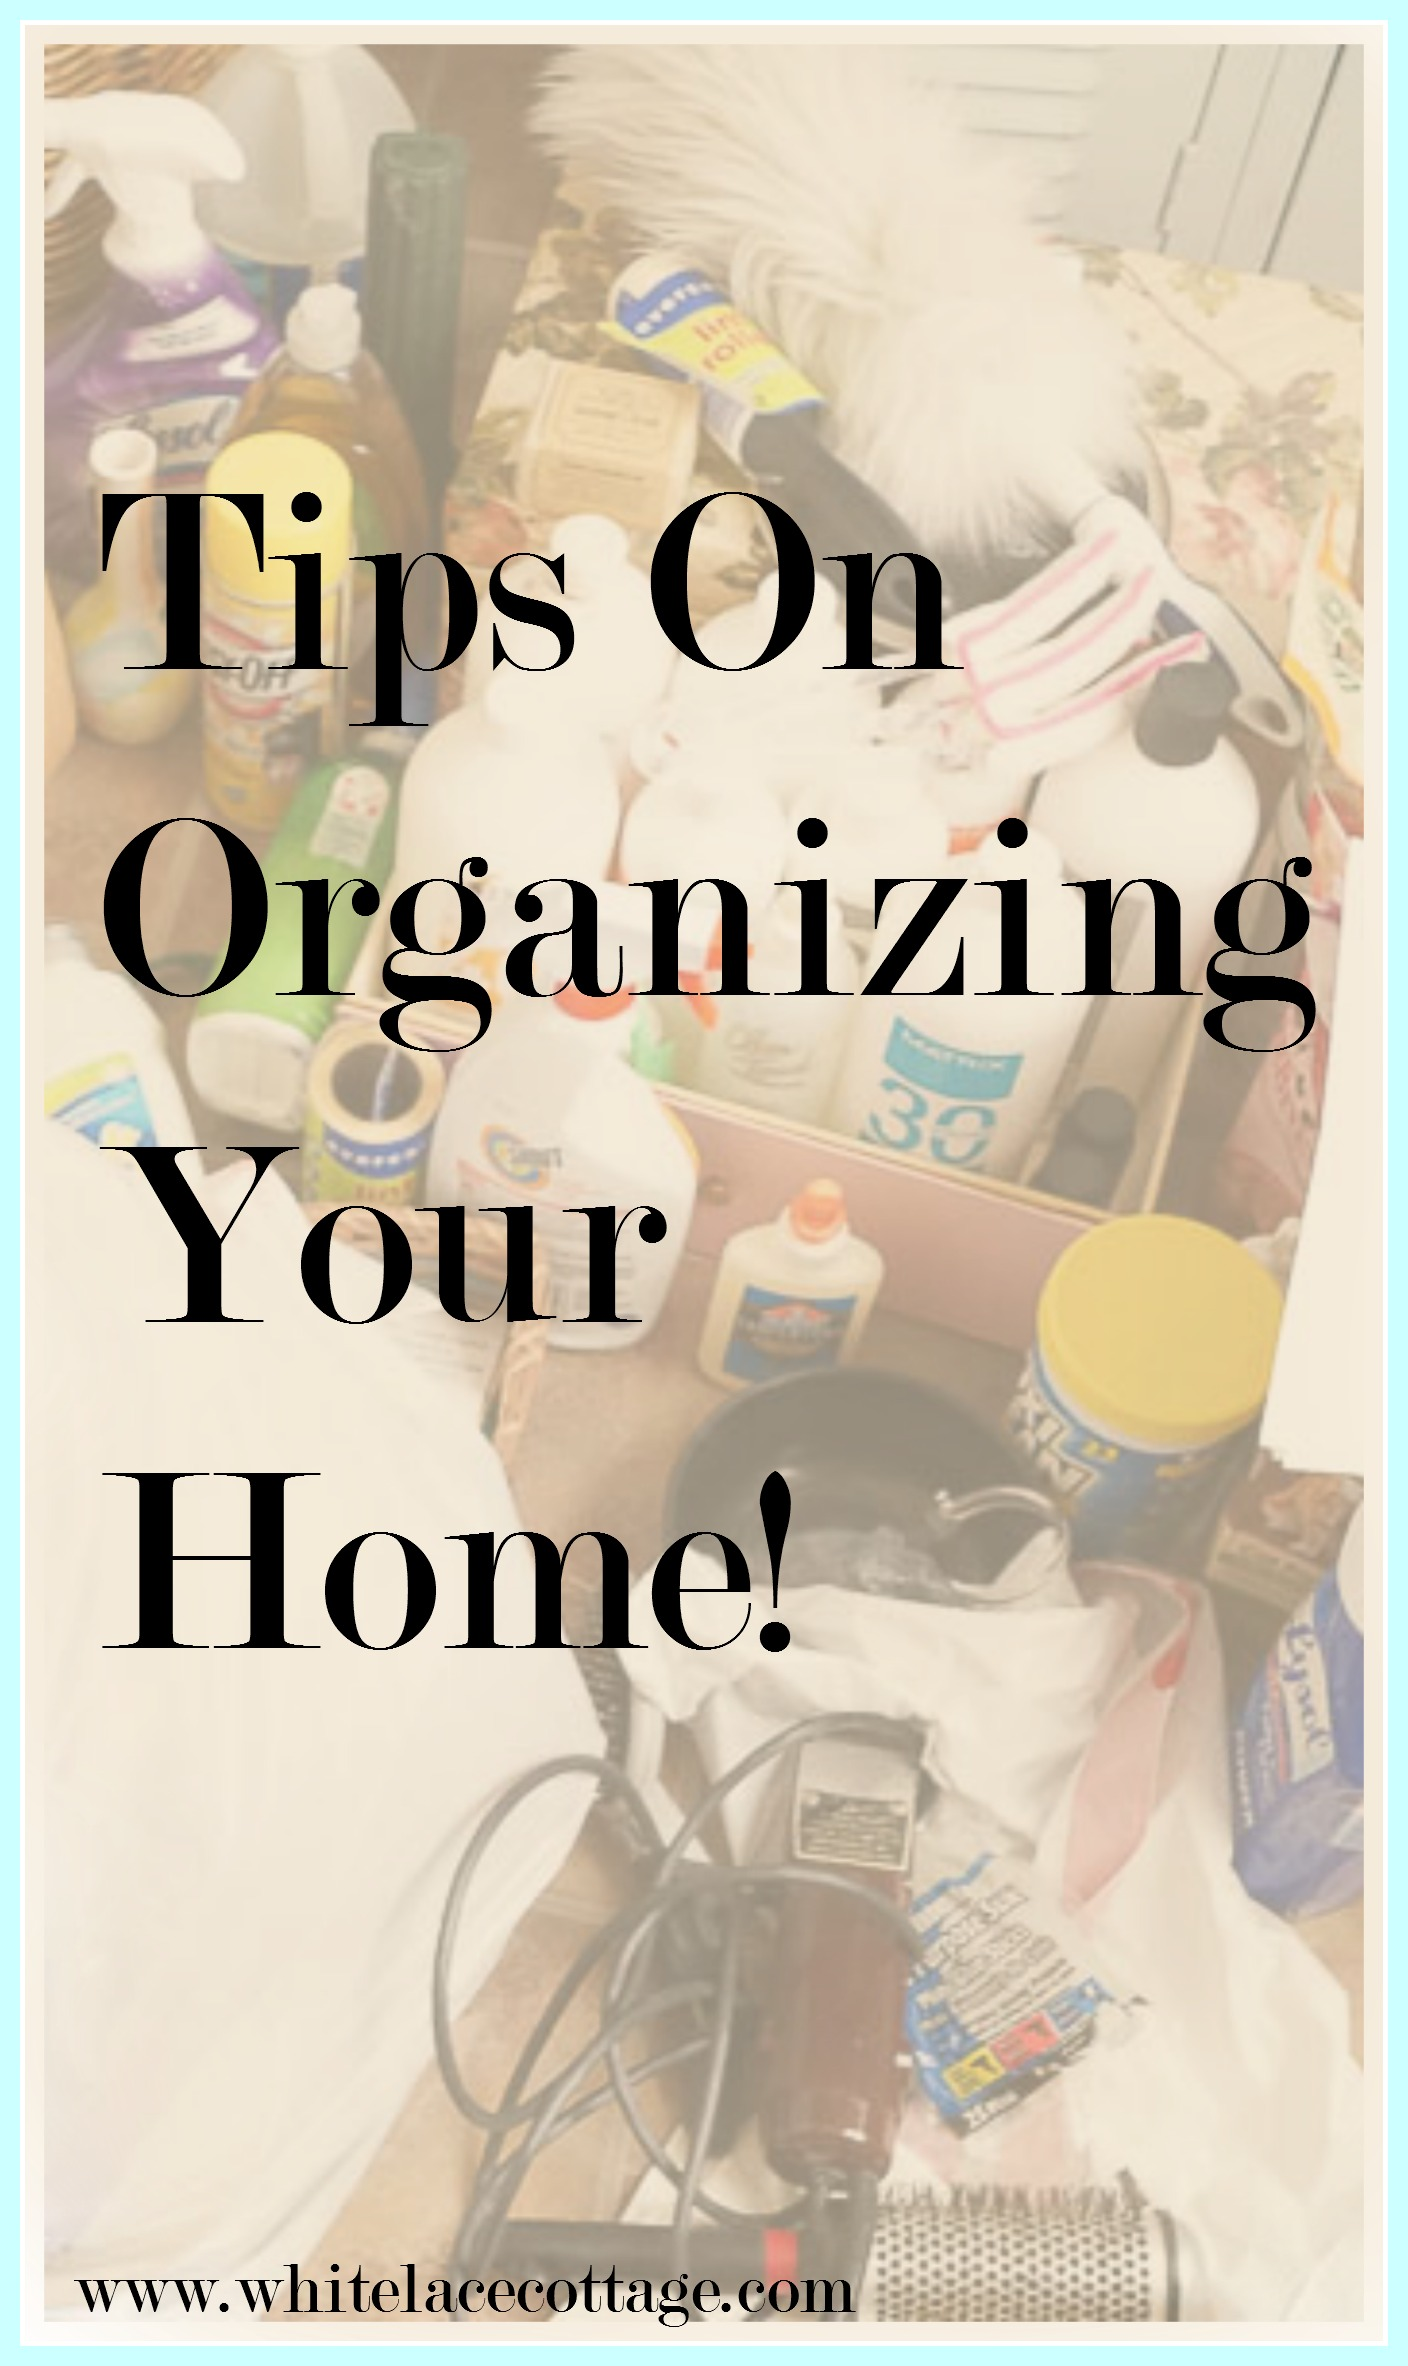 Here are are a few home organization ideas to make your life easier.